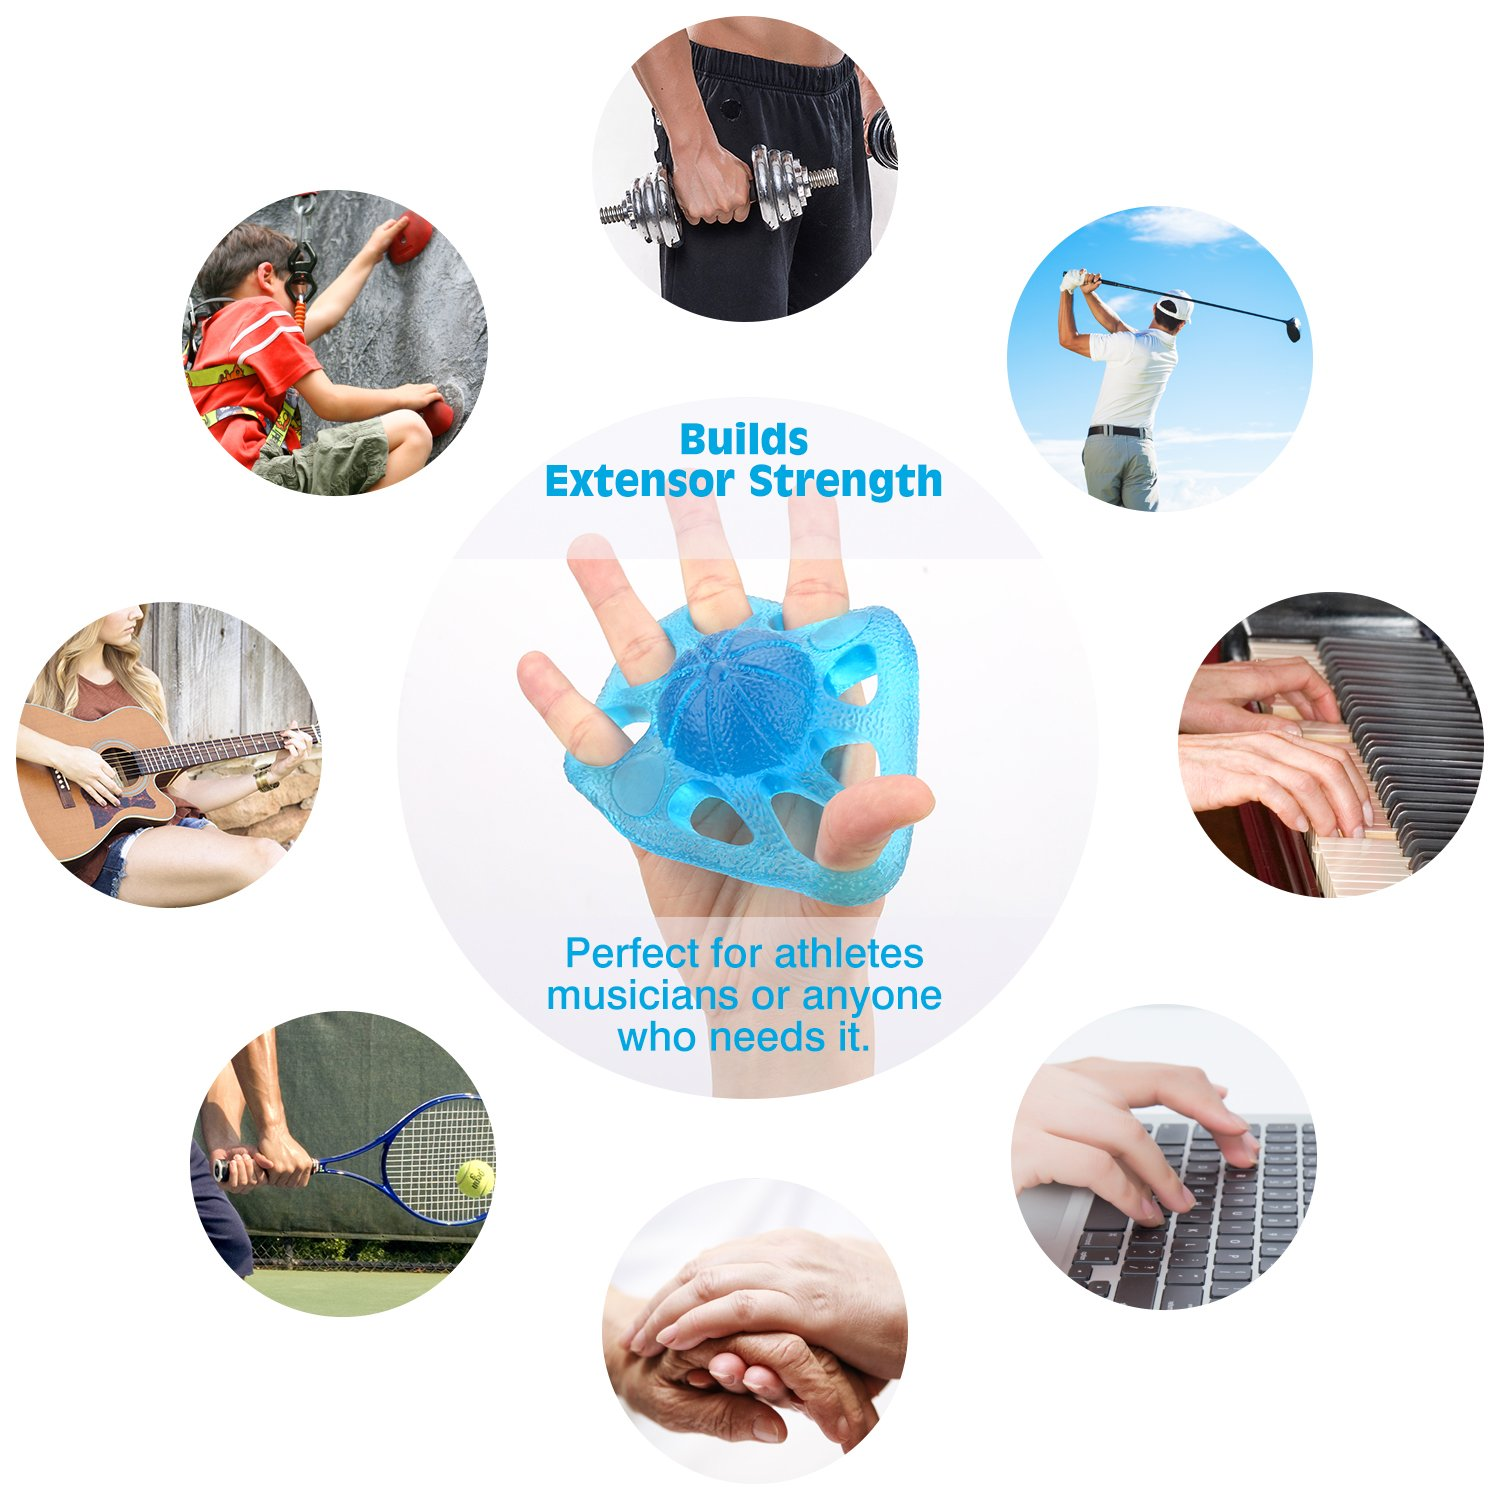 Muscle Pain Relief And Therapy Squeeze And Flex Training for Thera-Band Strength Training Blue Stress Reflexology MoKo Grip Exerciser Ball Finger Exerciser /& Hand Strengthener